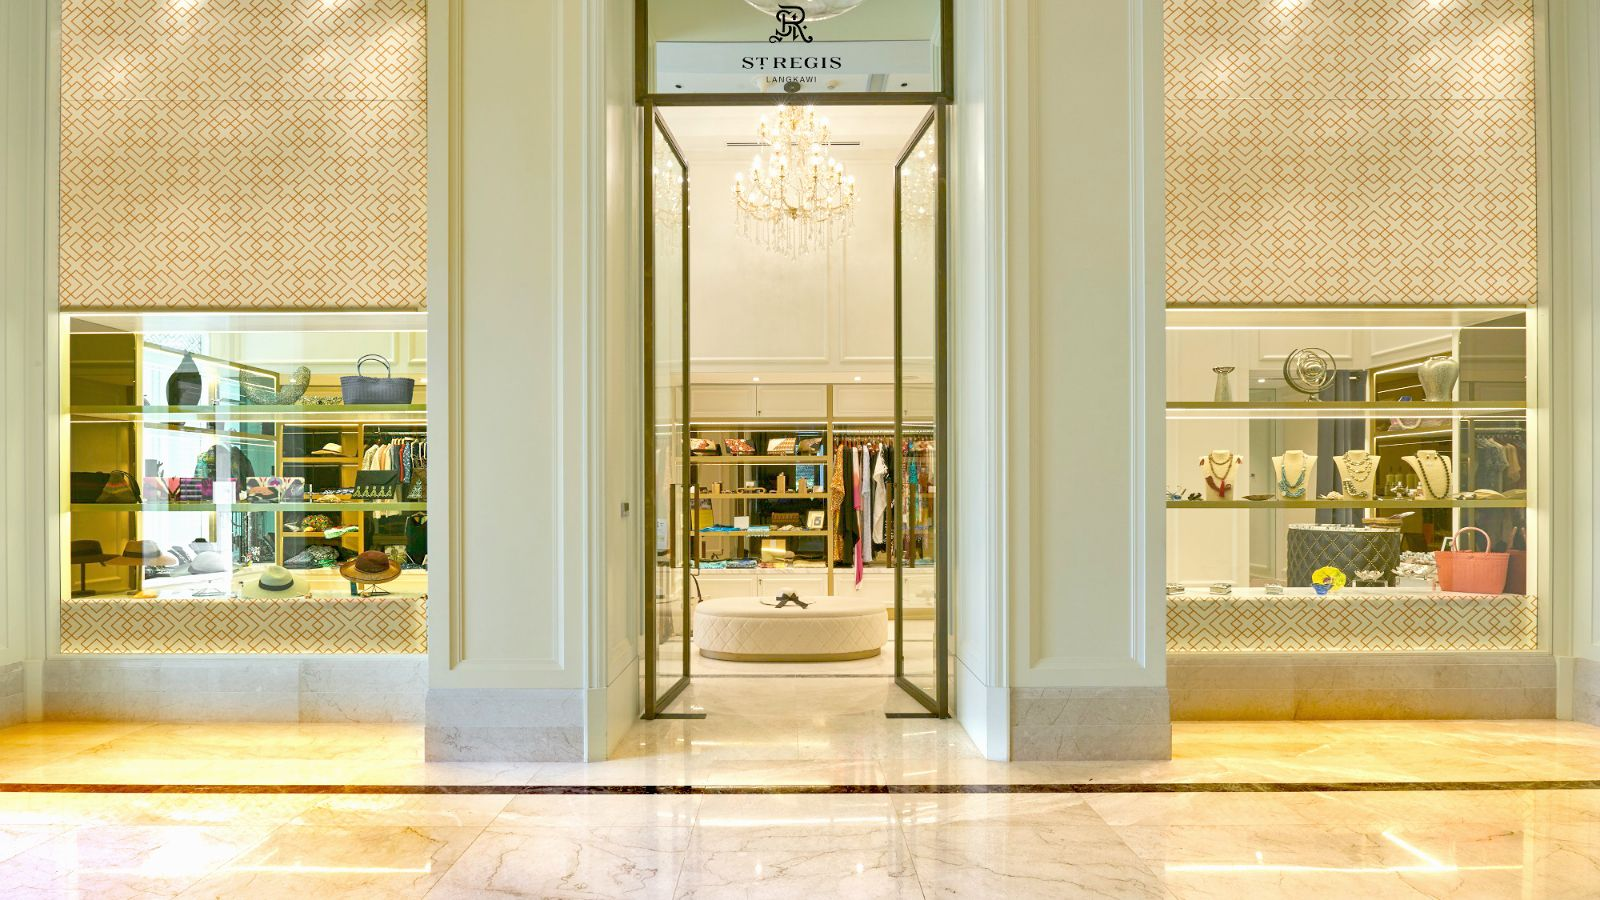 The St. Regis Boutique